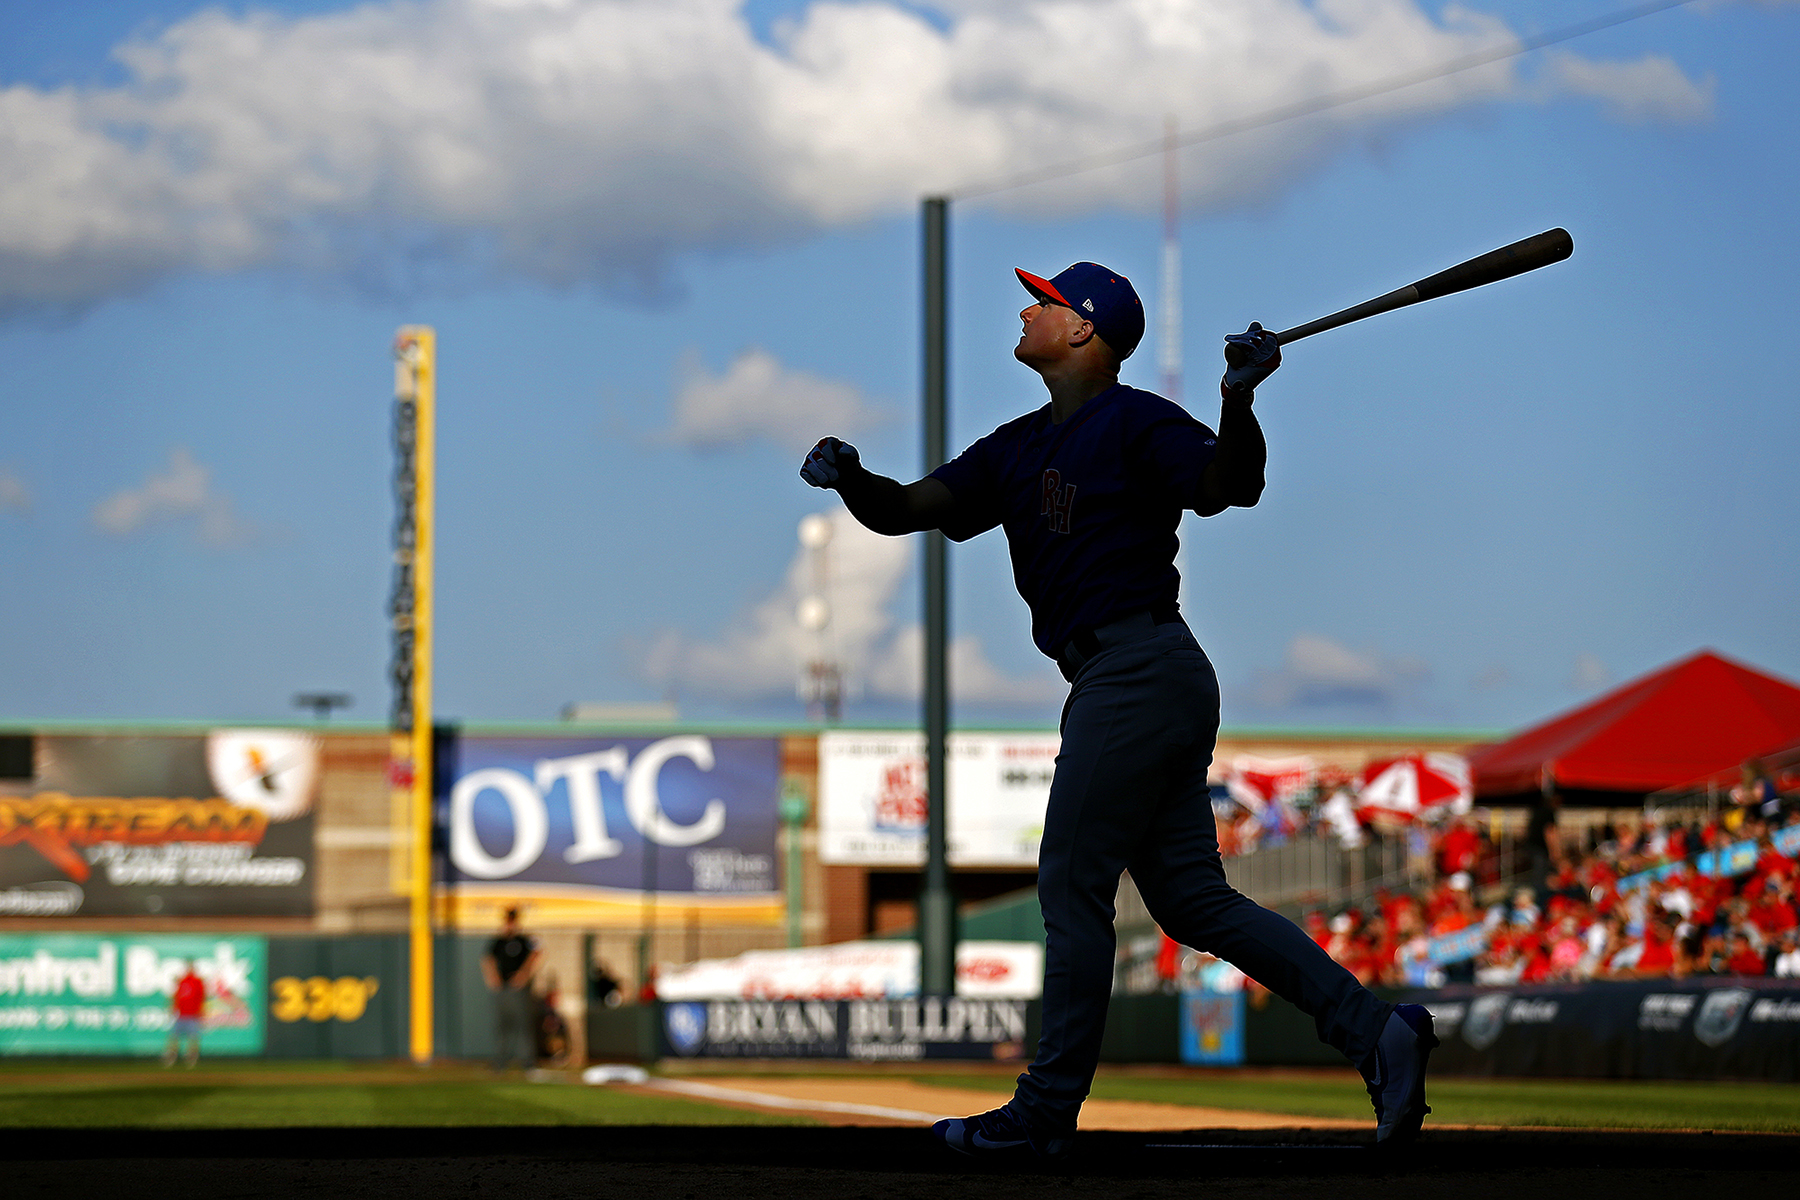 Midland RockHounds infielder Matt Chapman (7) looks at one of his hits during the Texas League All-Star Home Run Derby held before the league's All-Star Game at Hammons Field in Springfield, Mo. on June 28, 2016.